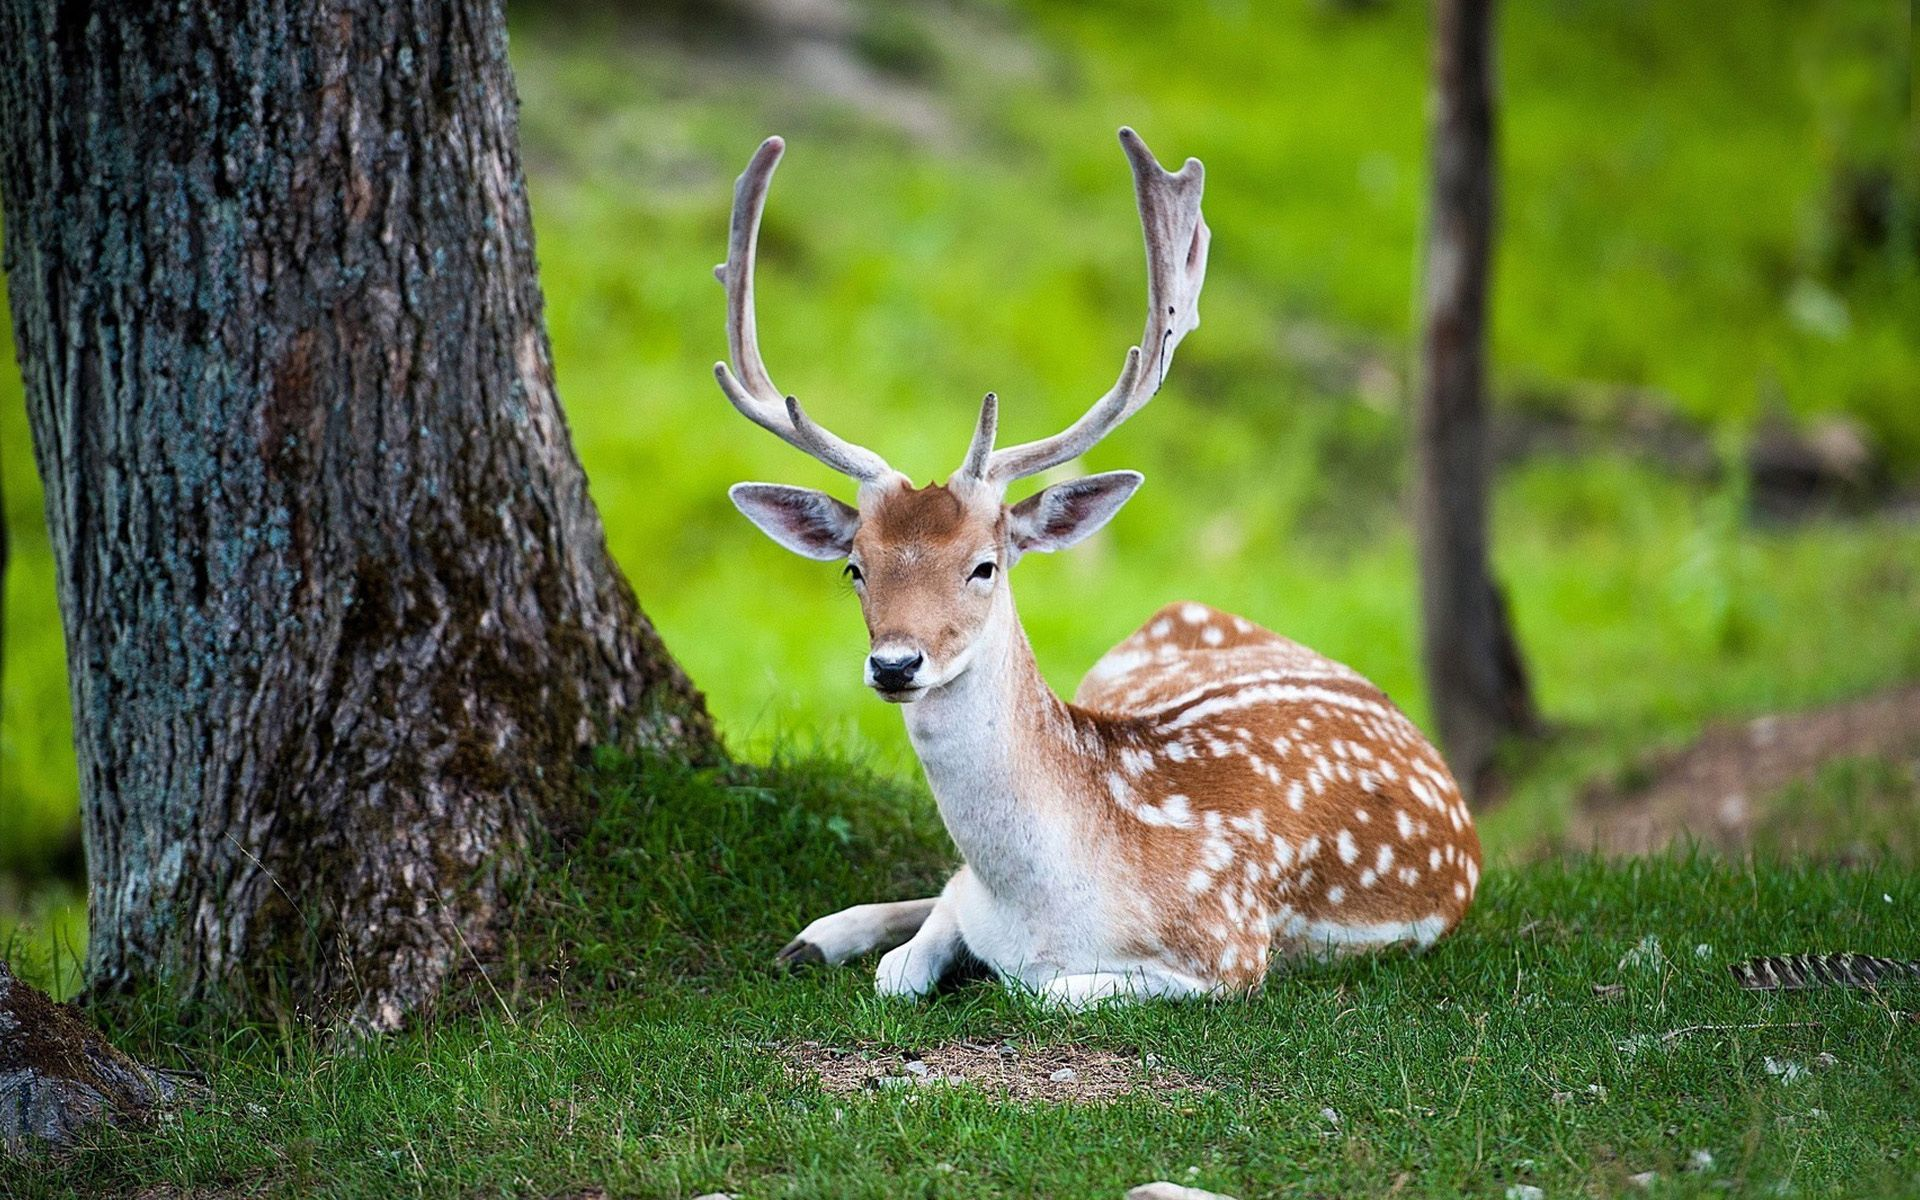 deer hd wallpaper free download | animals | pinterest | hd wallpaper